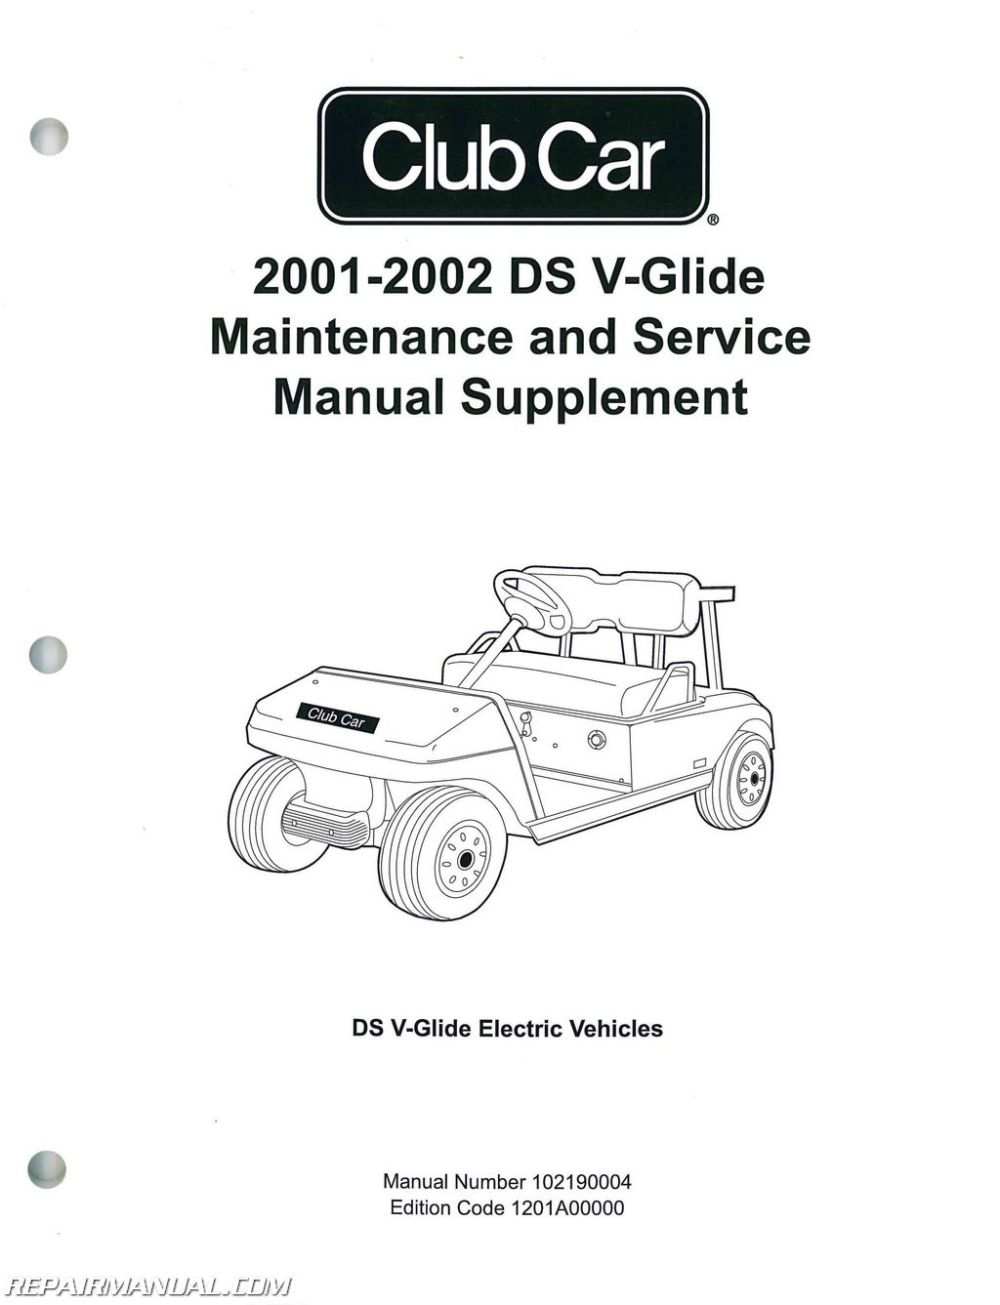 medium resolution of 2001 2002 club car ds v glide golf car maintenance and service diagram 2002 club car schematic